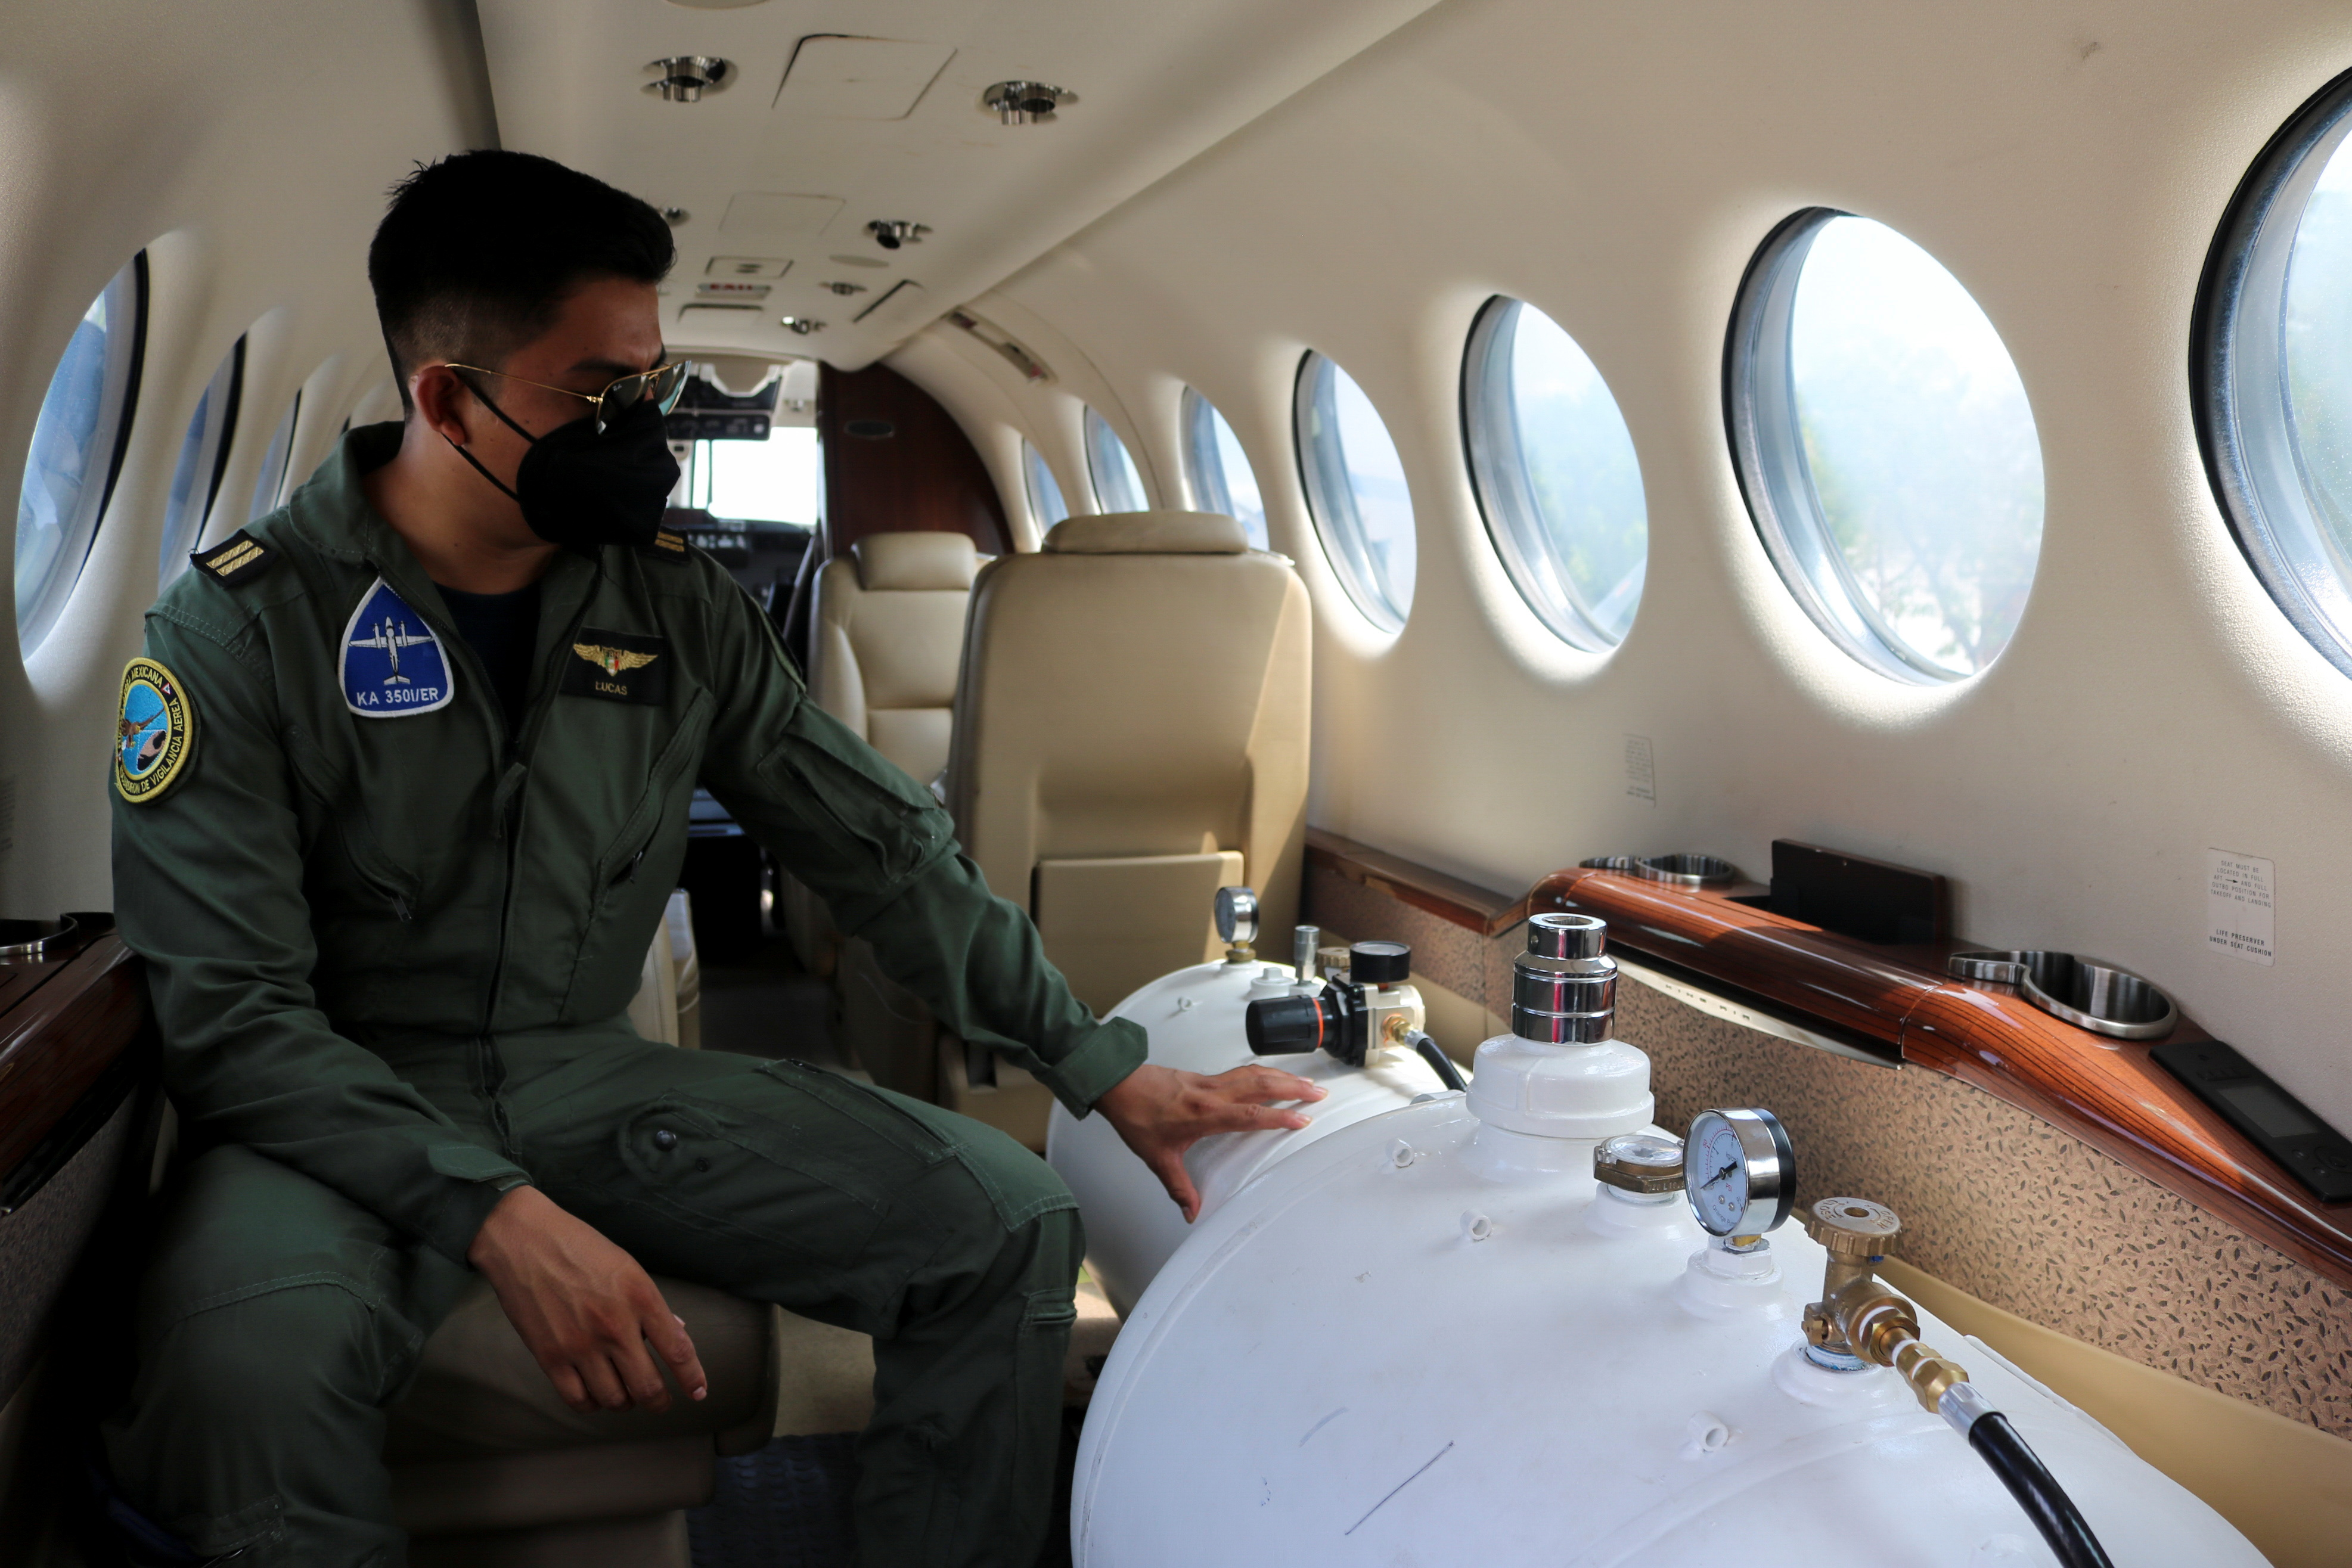 A member of the Air Force sit next to the tanks with cloud seeding solution in a King Air 350i plane, used for cloud seeding to enhance precipitation as part of the efforts to combat a long-term drought has hit two-thirds of Mexico, at the Military Air Base No. 10 in Culiacan, in Sinaloa state, Mexico June 25, 2021. REUTERS/Jesus Bustamante